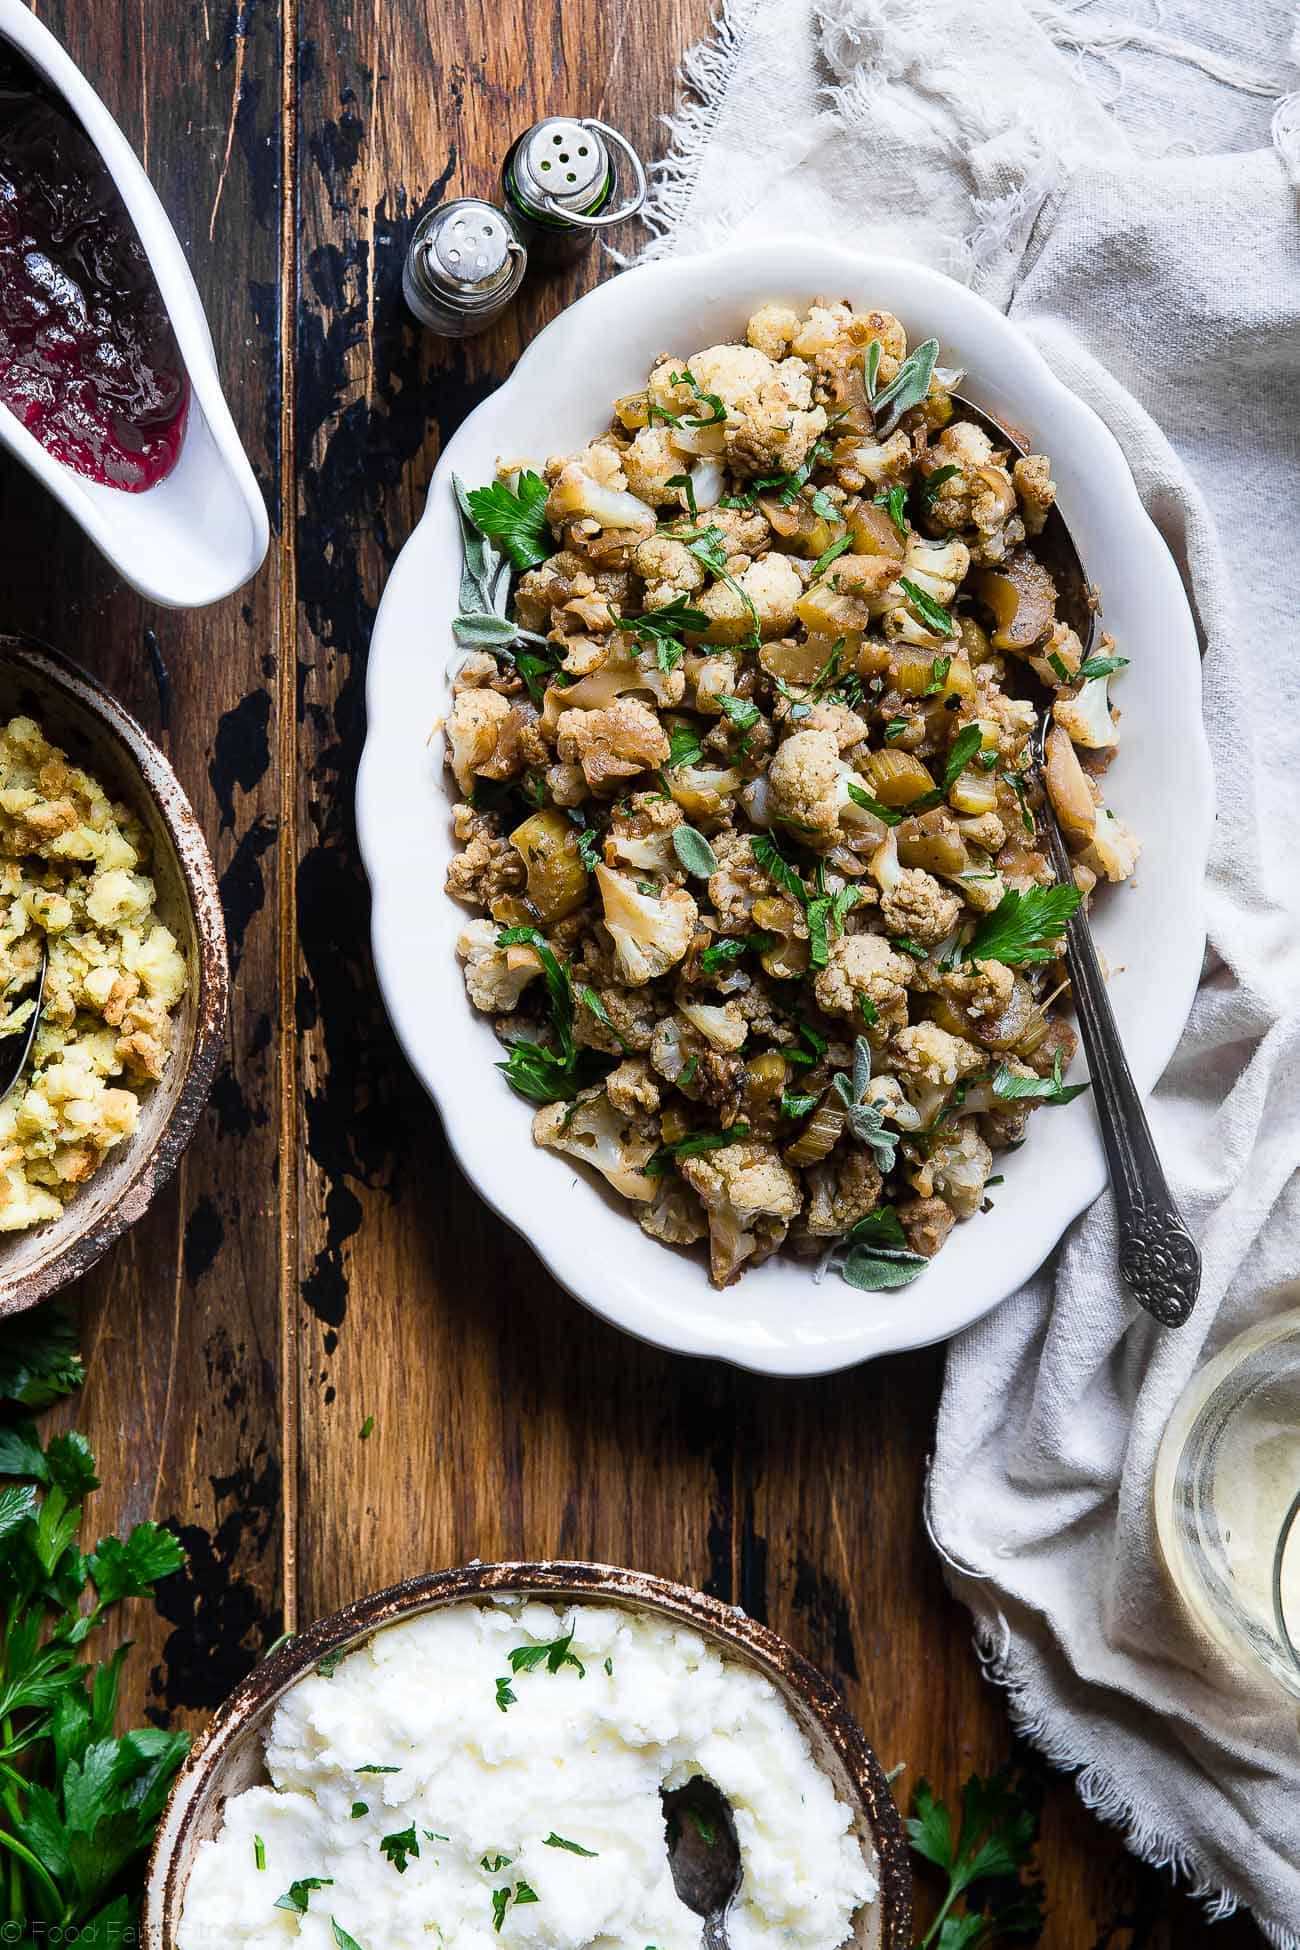 Cauliflower Low Carb Paleo Vegan Stuffing - Made entirely from vegetables but has all the flavor of traditional bread stuffing! It's super easy, whole30 compliant, paleo, vegan, gluten free and SO delicious! Perfect for Thanksgiving or Christmas! | Foodfaithfitness.com | @FoodFaithFit